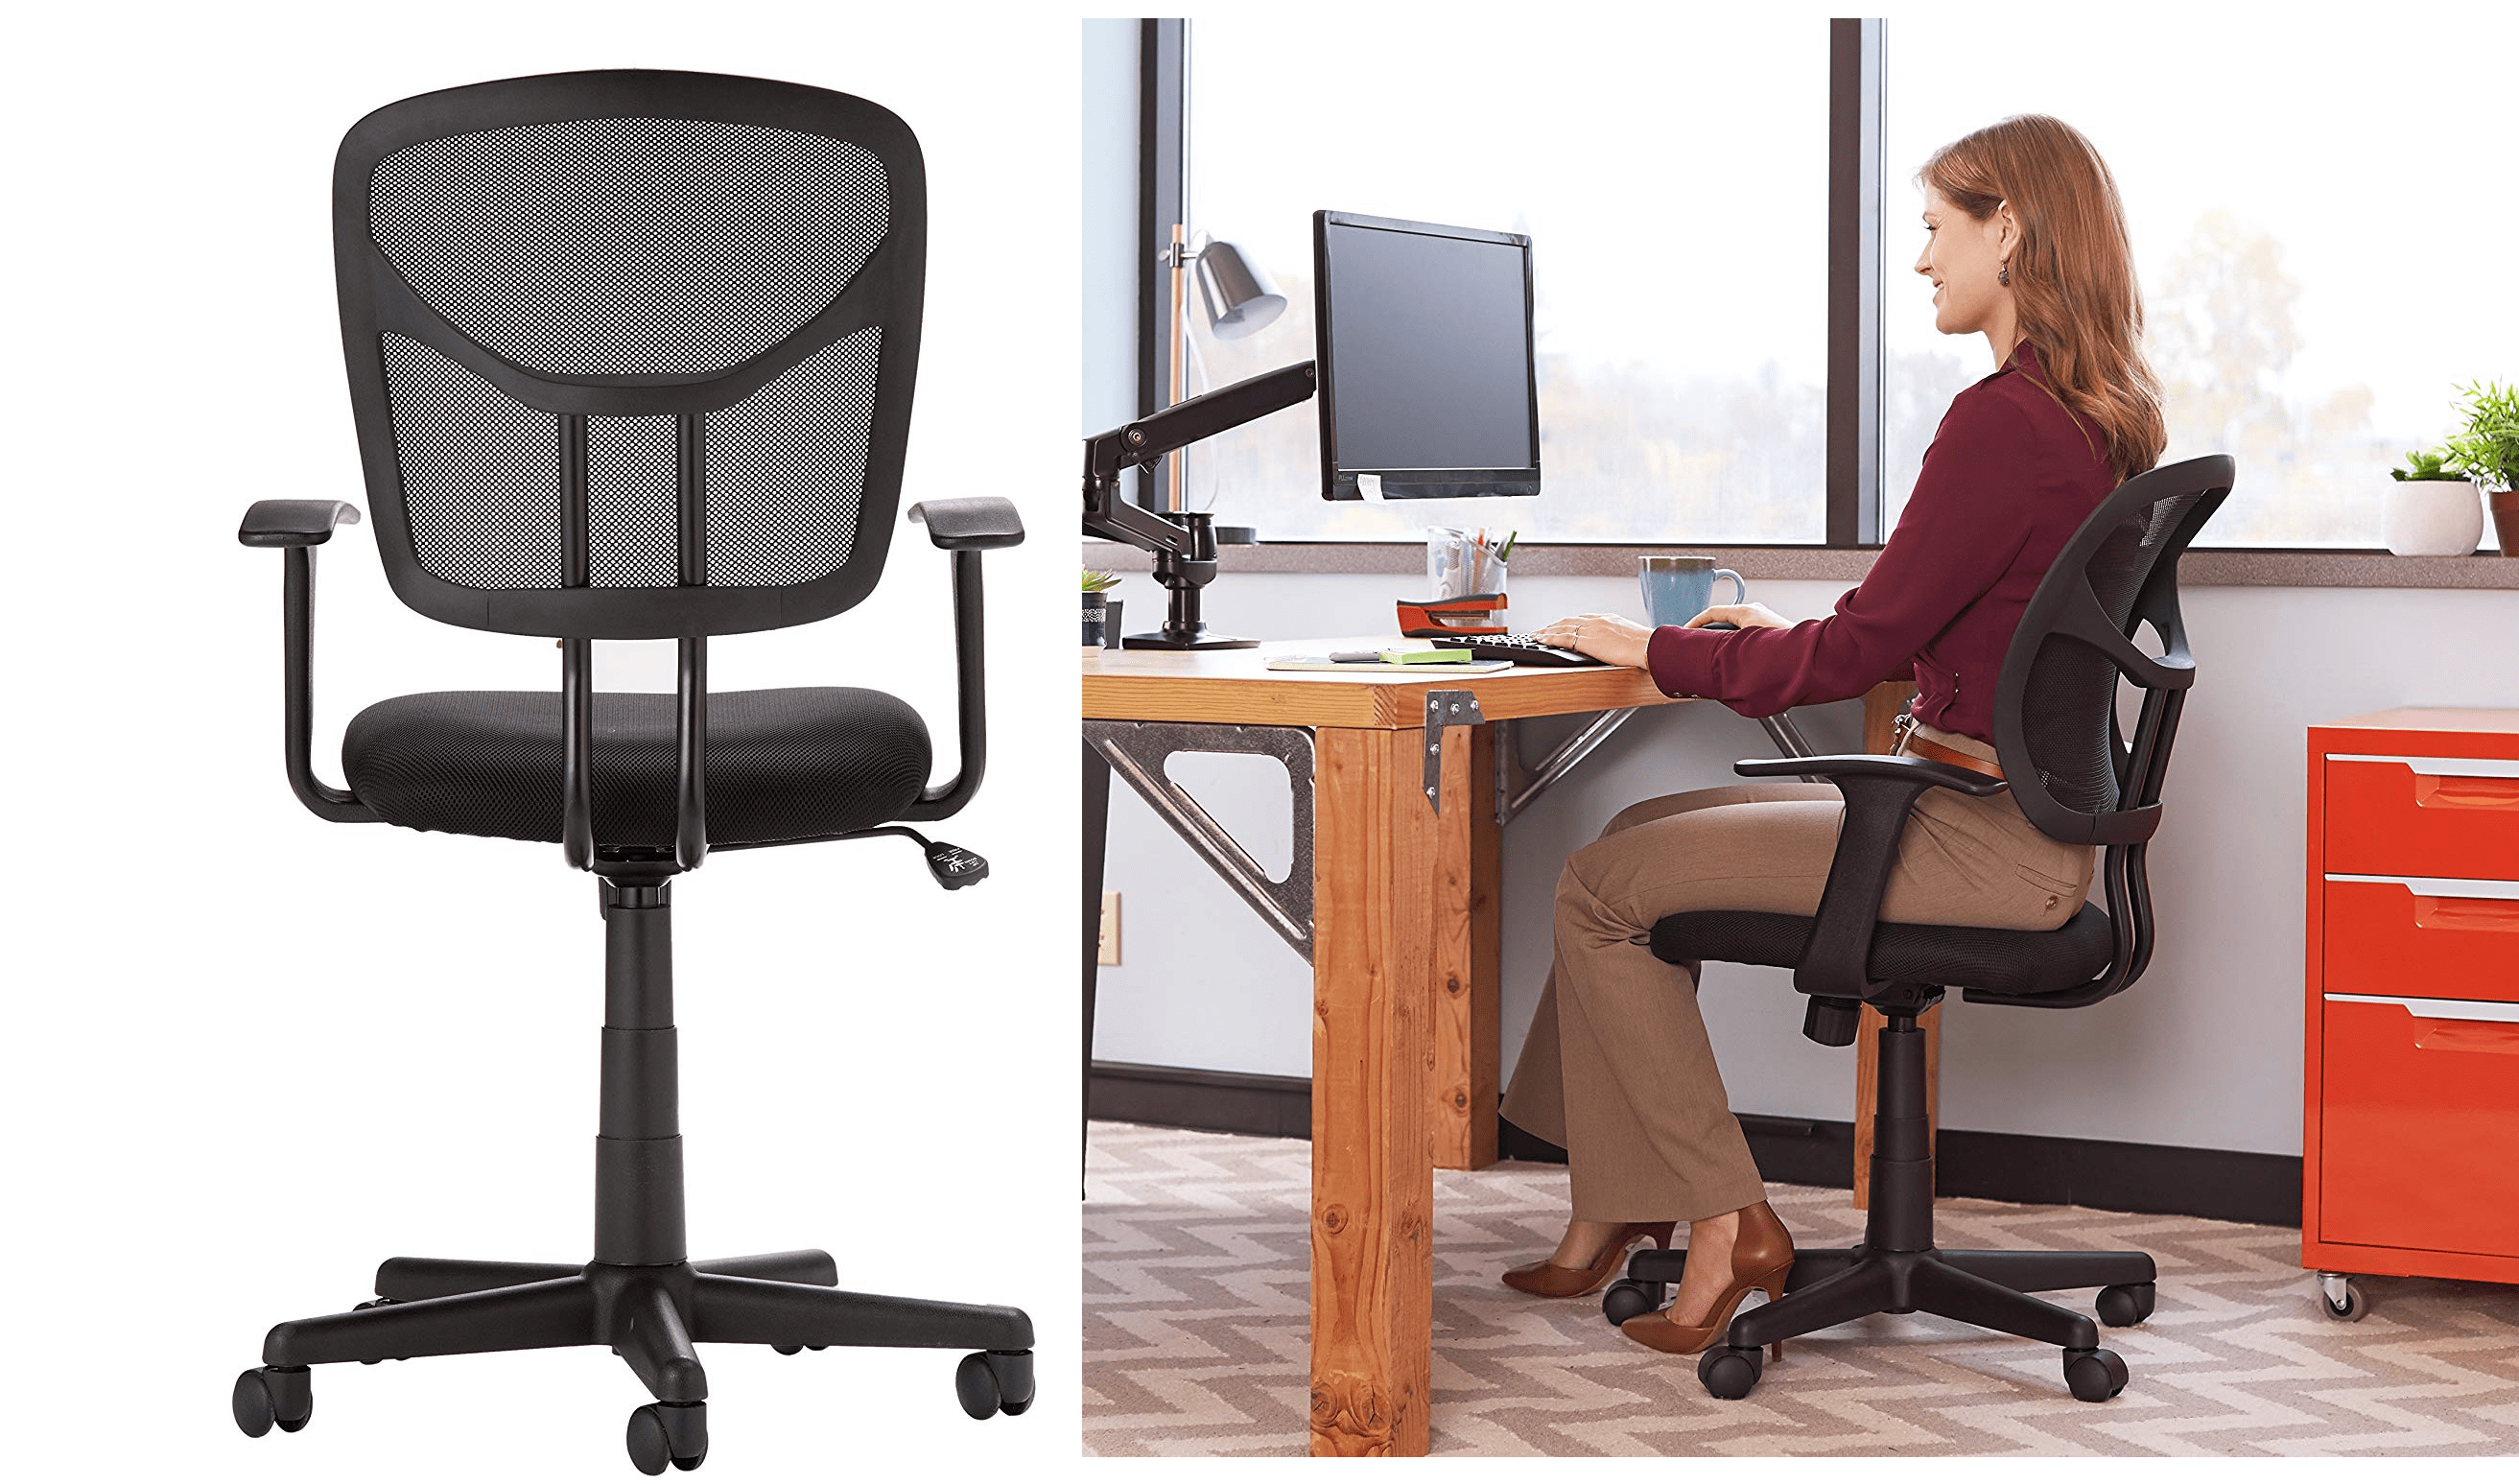 throne office chair mall massage it s time to upgrade your with this ergonomic amazonbasics 46 50 reg 60